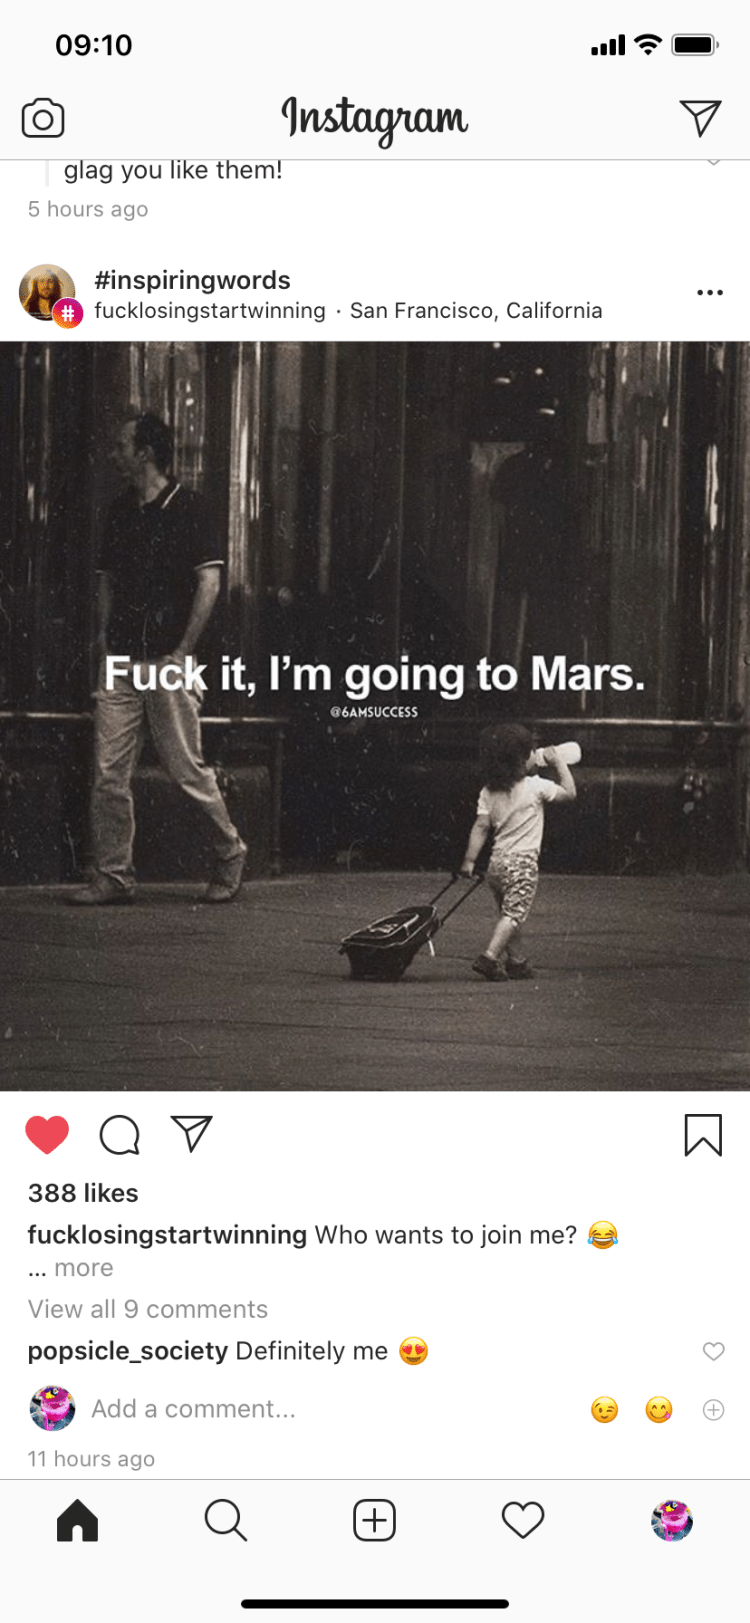 Fuck it, I'm going to Mars